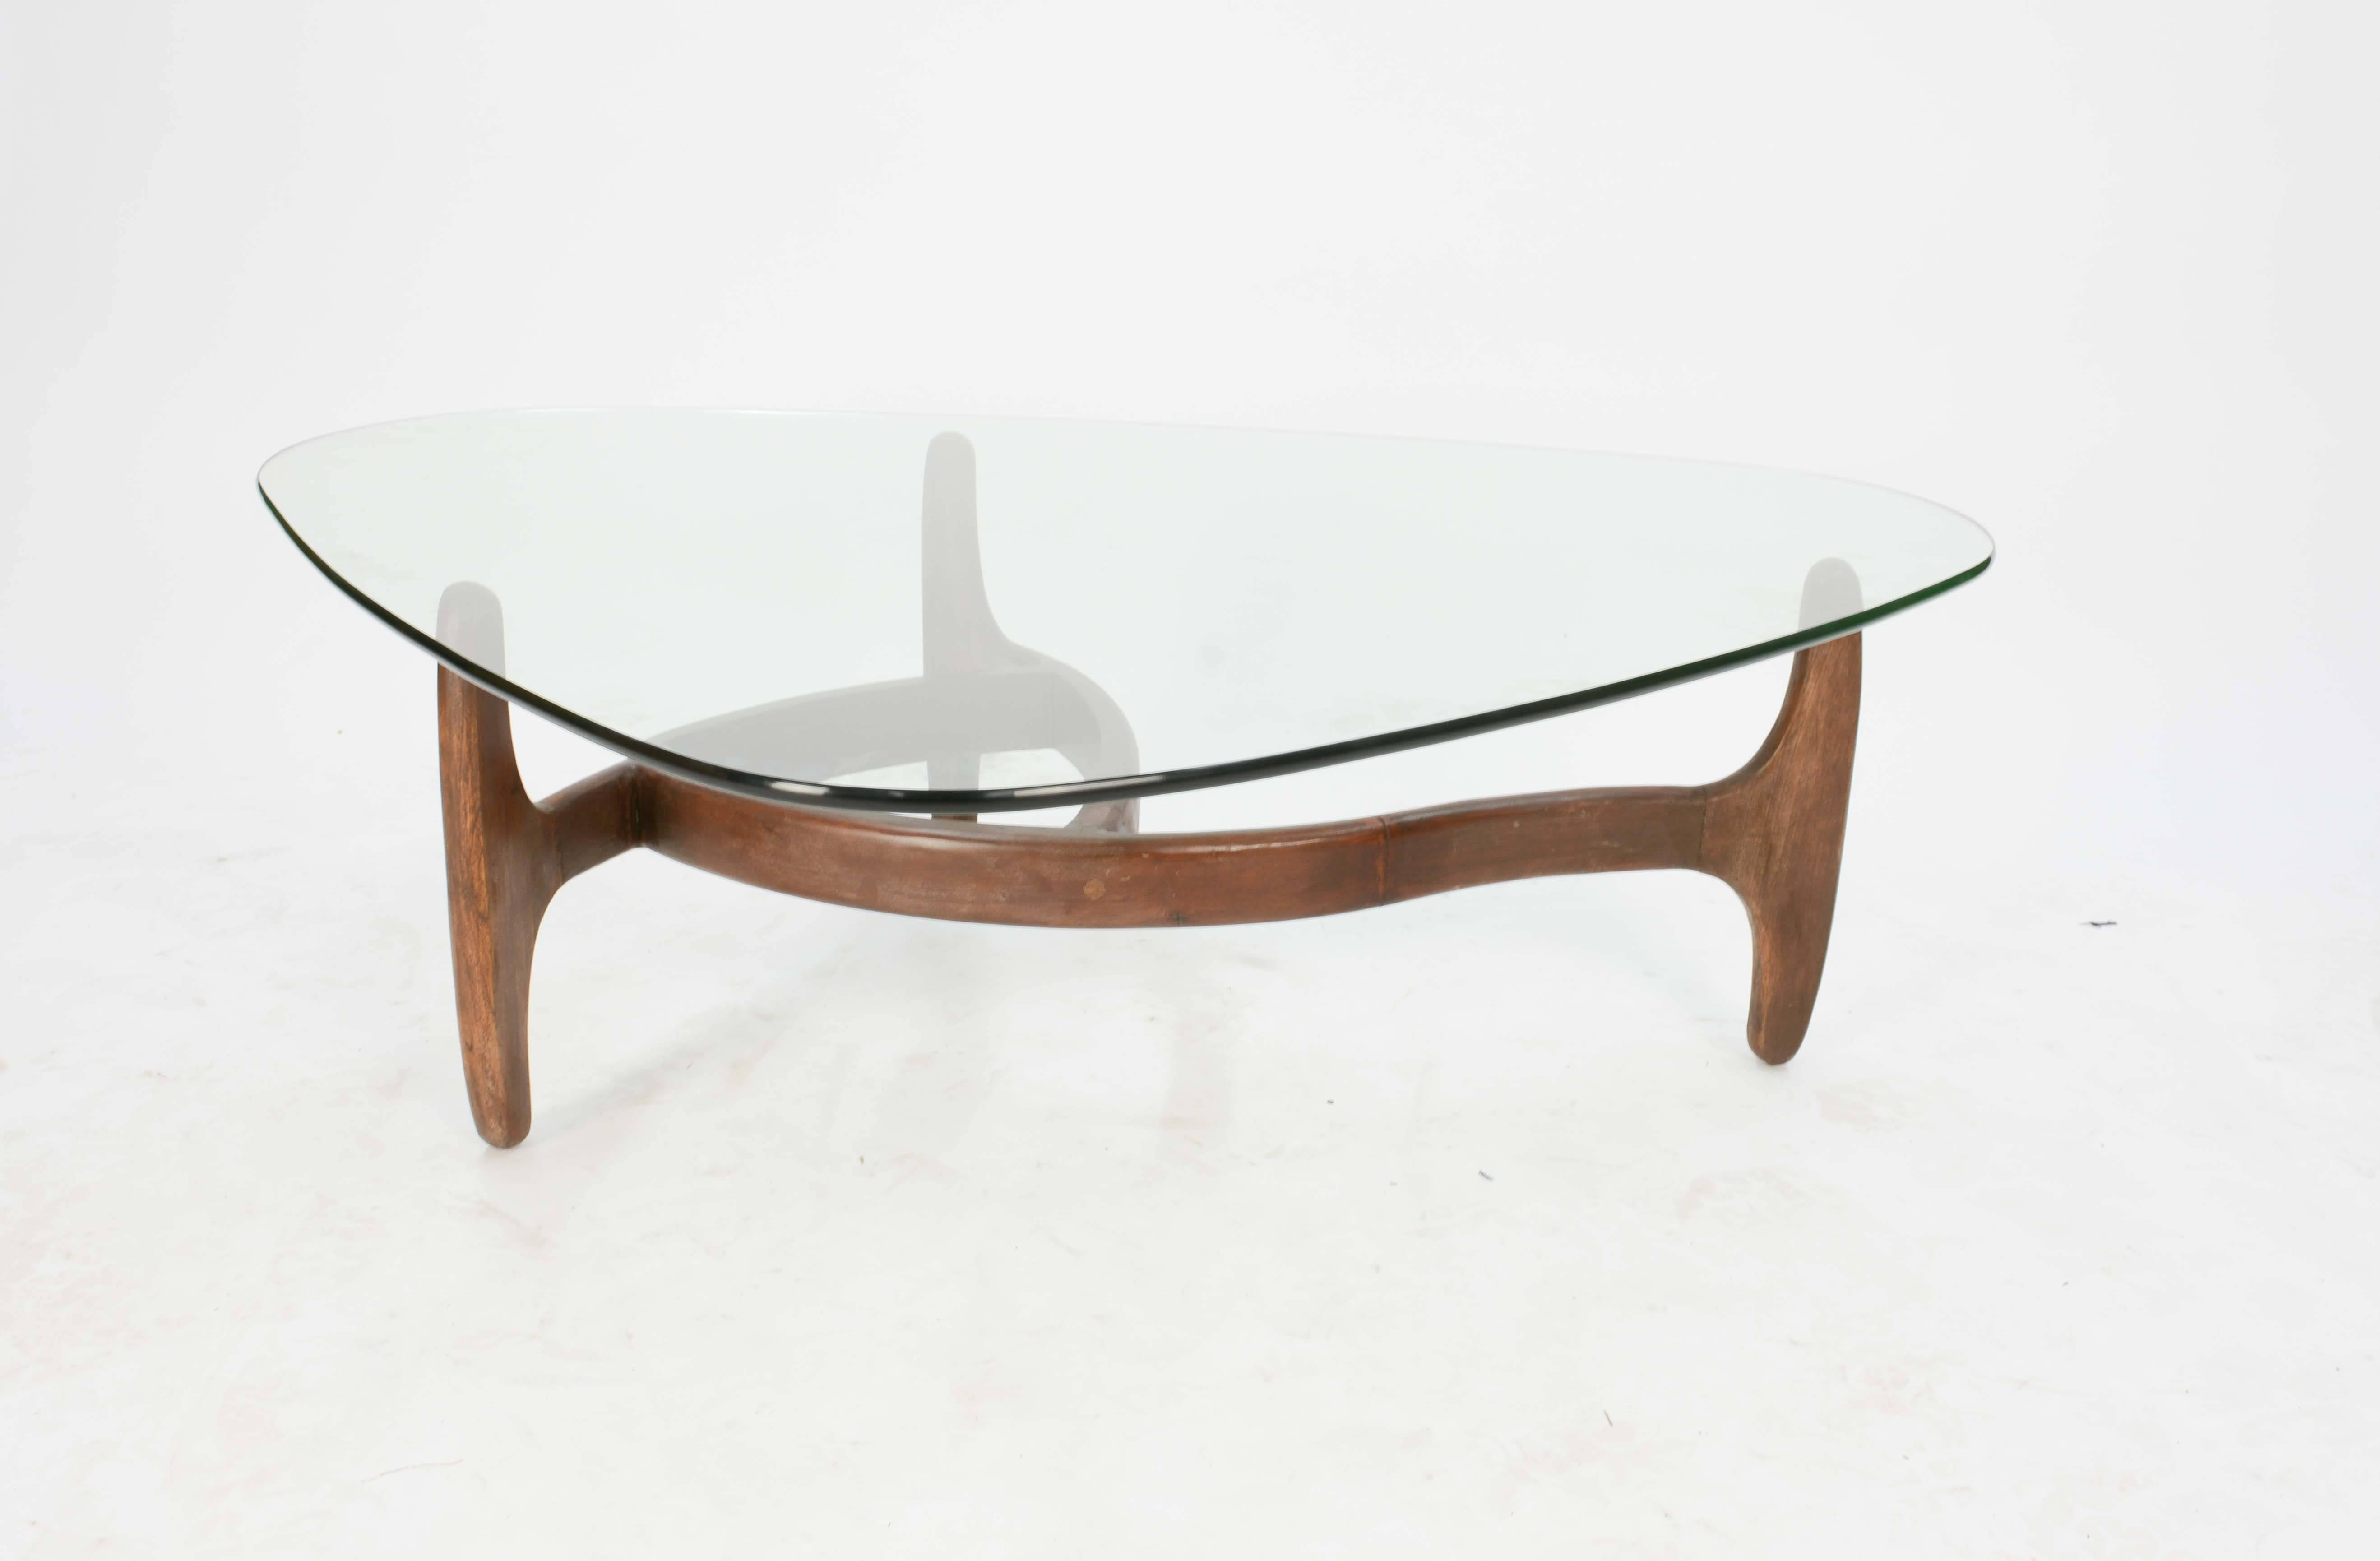 Biomorphic Coffee Table after Adrian Pearsall at 1stdibs